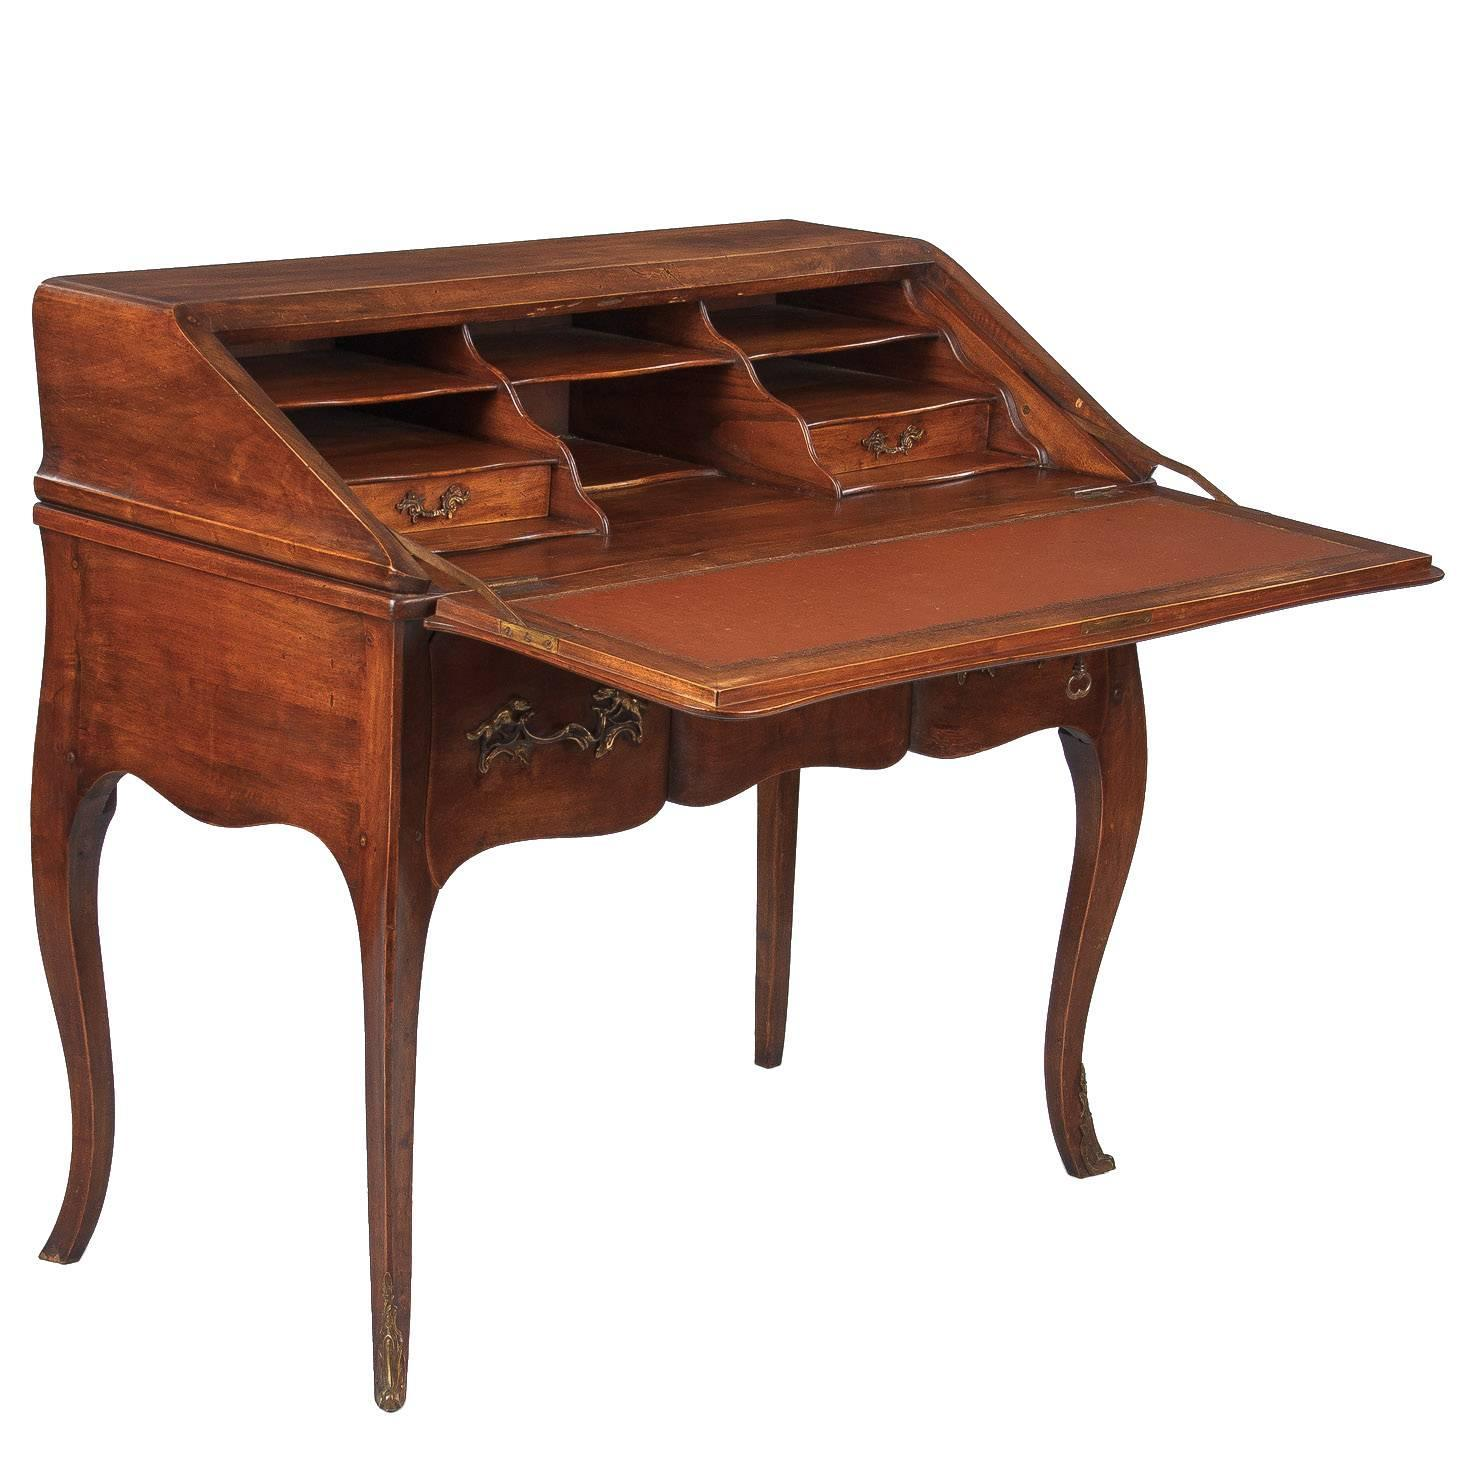 Desk Styles 1920s desks and writing tables - 60 for sale at 1stdibs